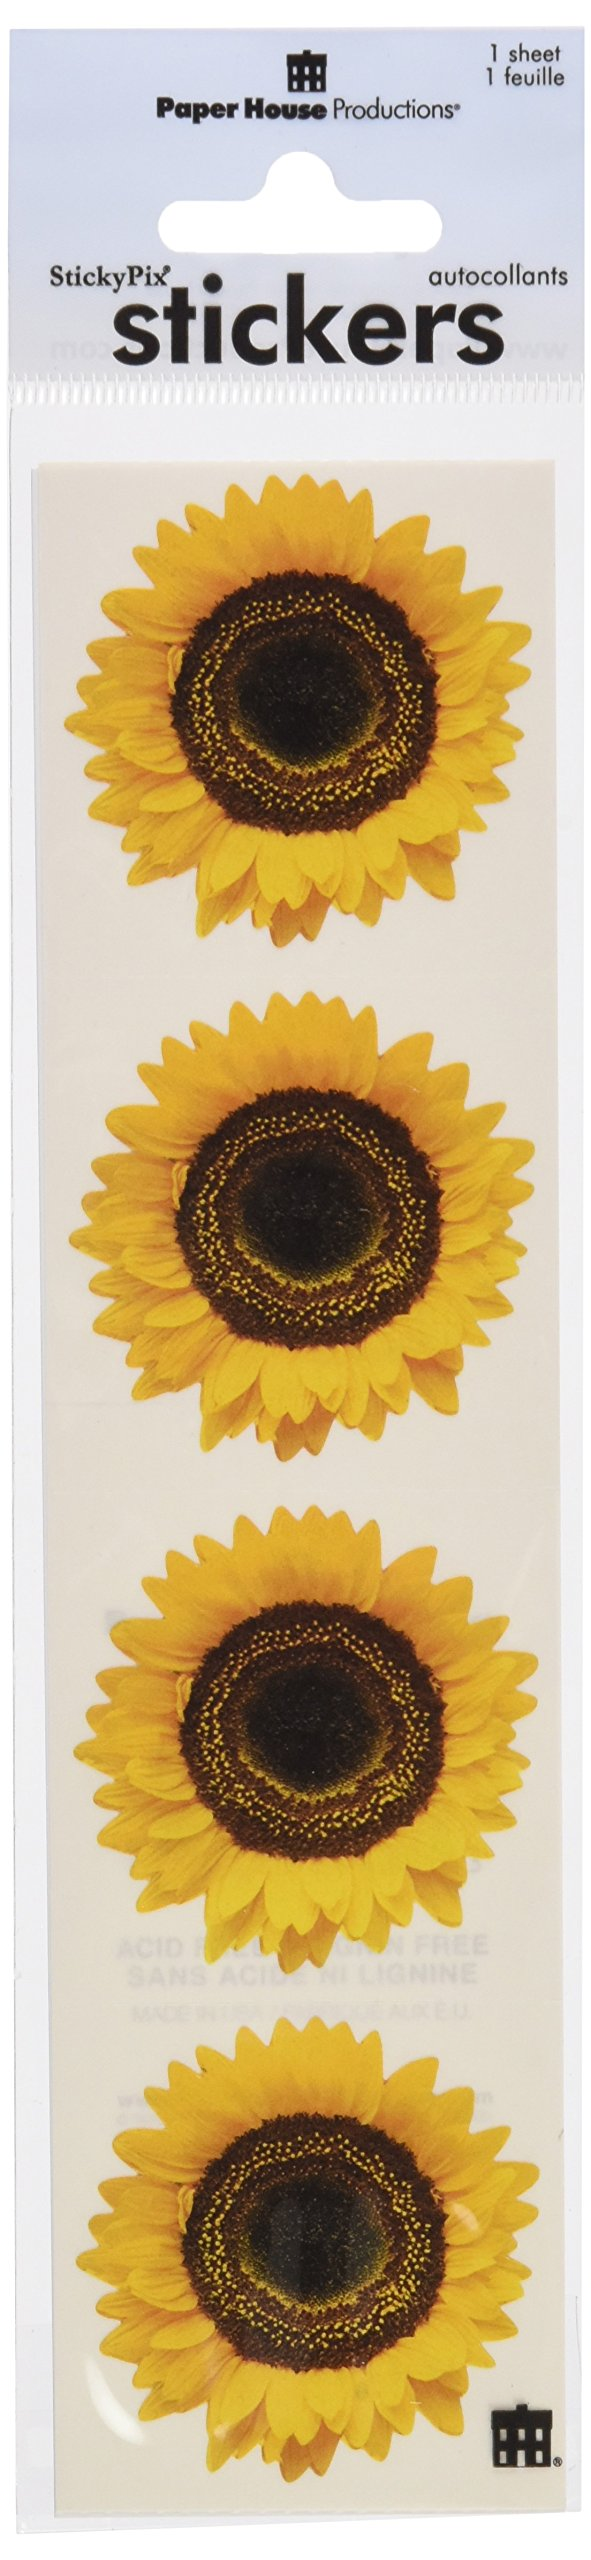 Paper House Productions ST-2009E Photo Real Stickypix Stickers, 2-Inch by 4-Inch, Sunflower (6-Pack)